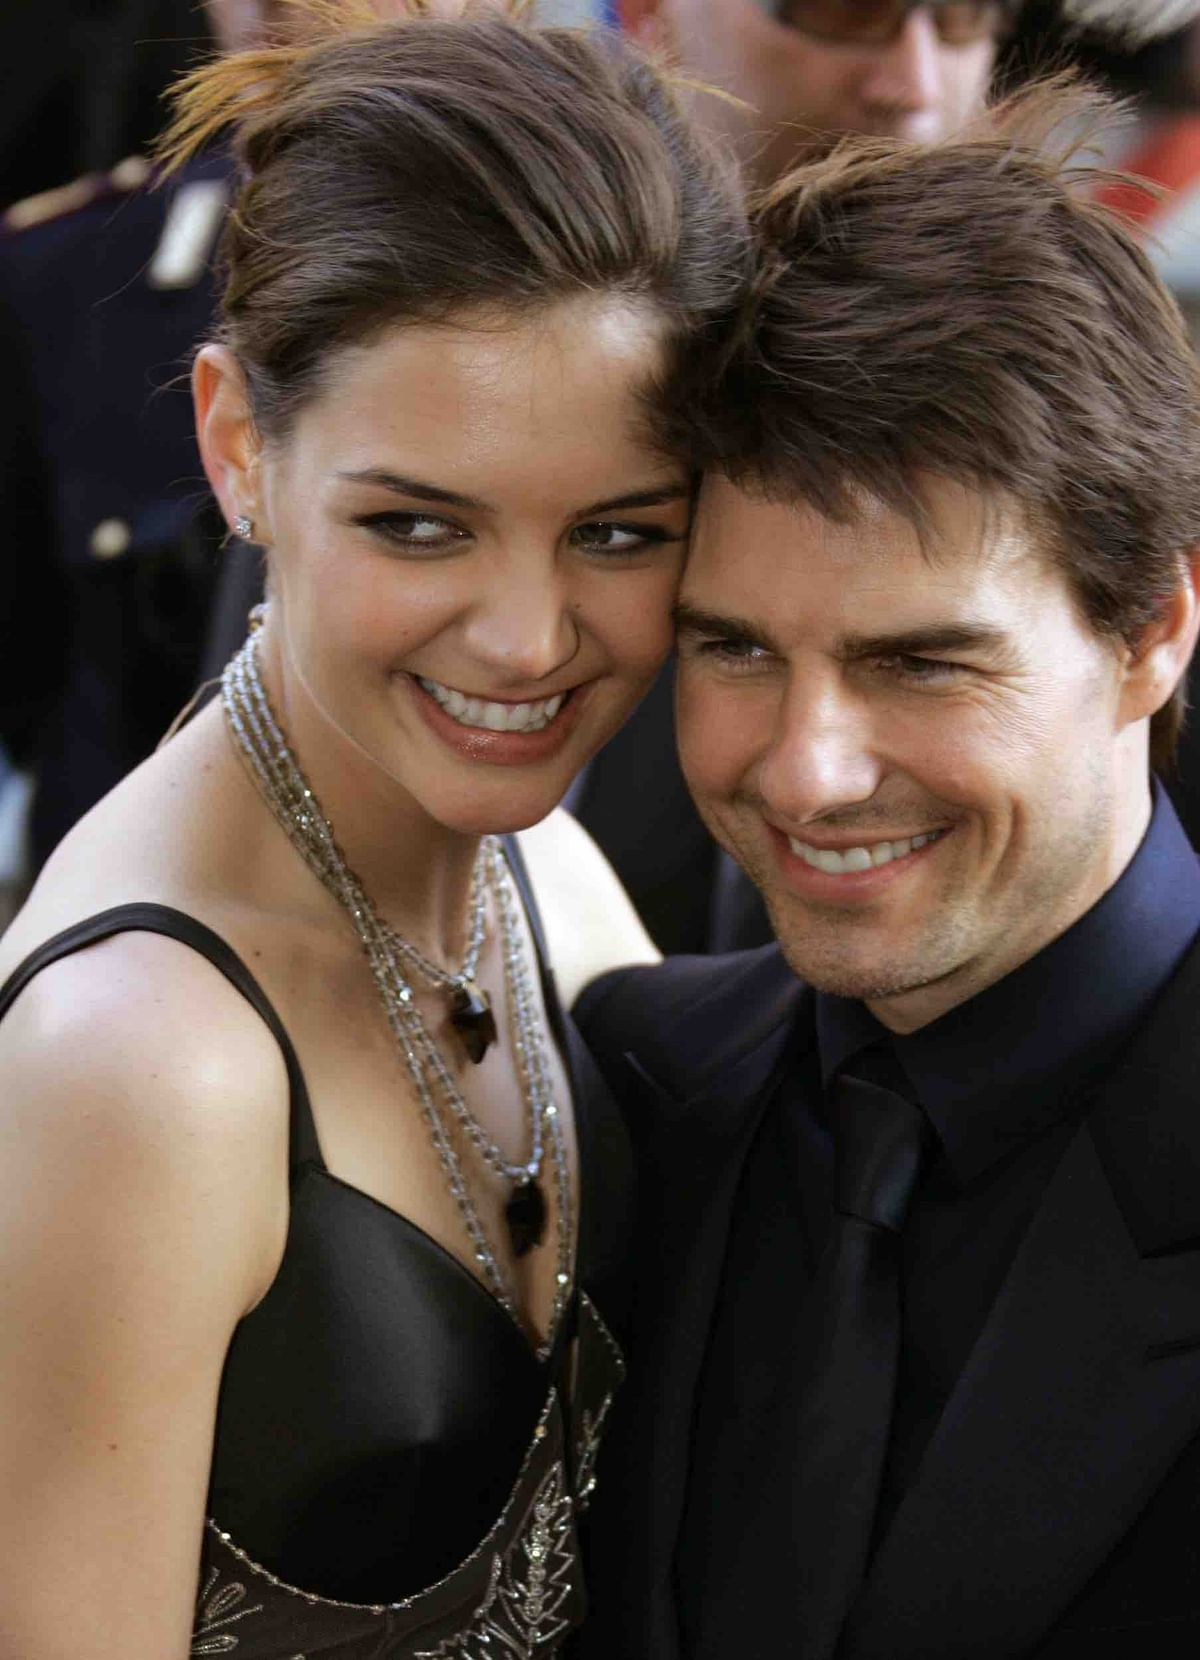 Katie Holmes and Tom Cruise: Their first appearance together in Rome (Photo: Reuters)